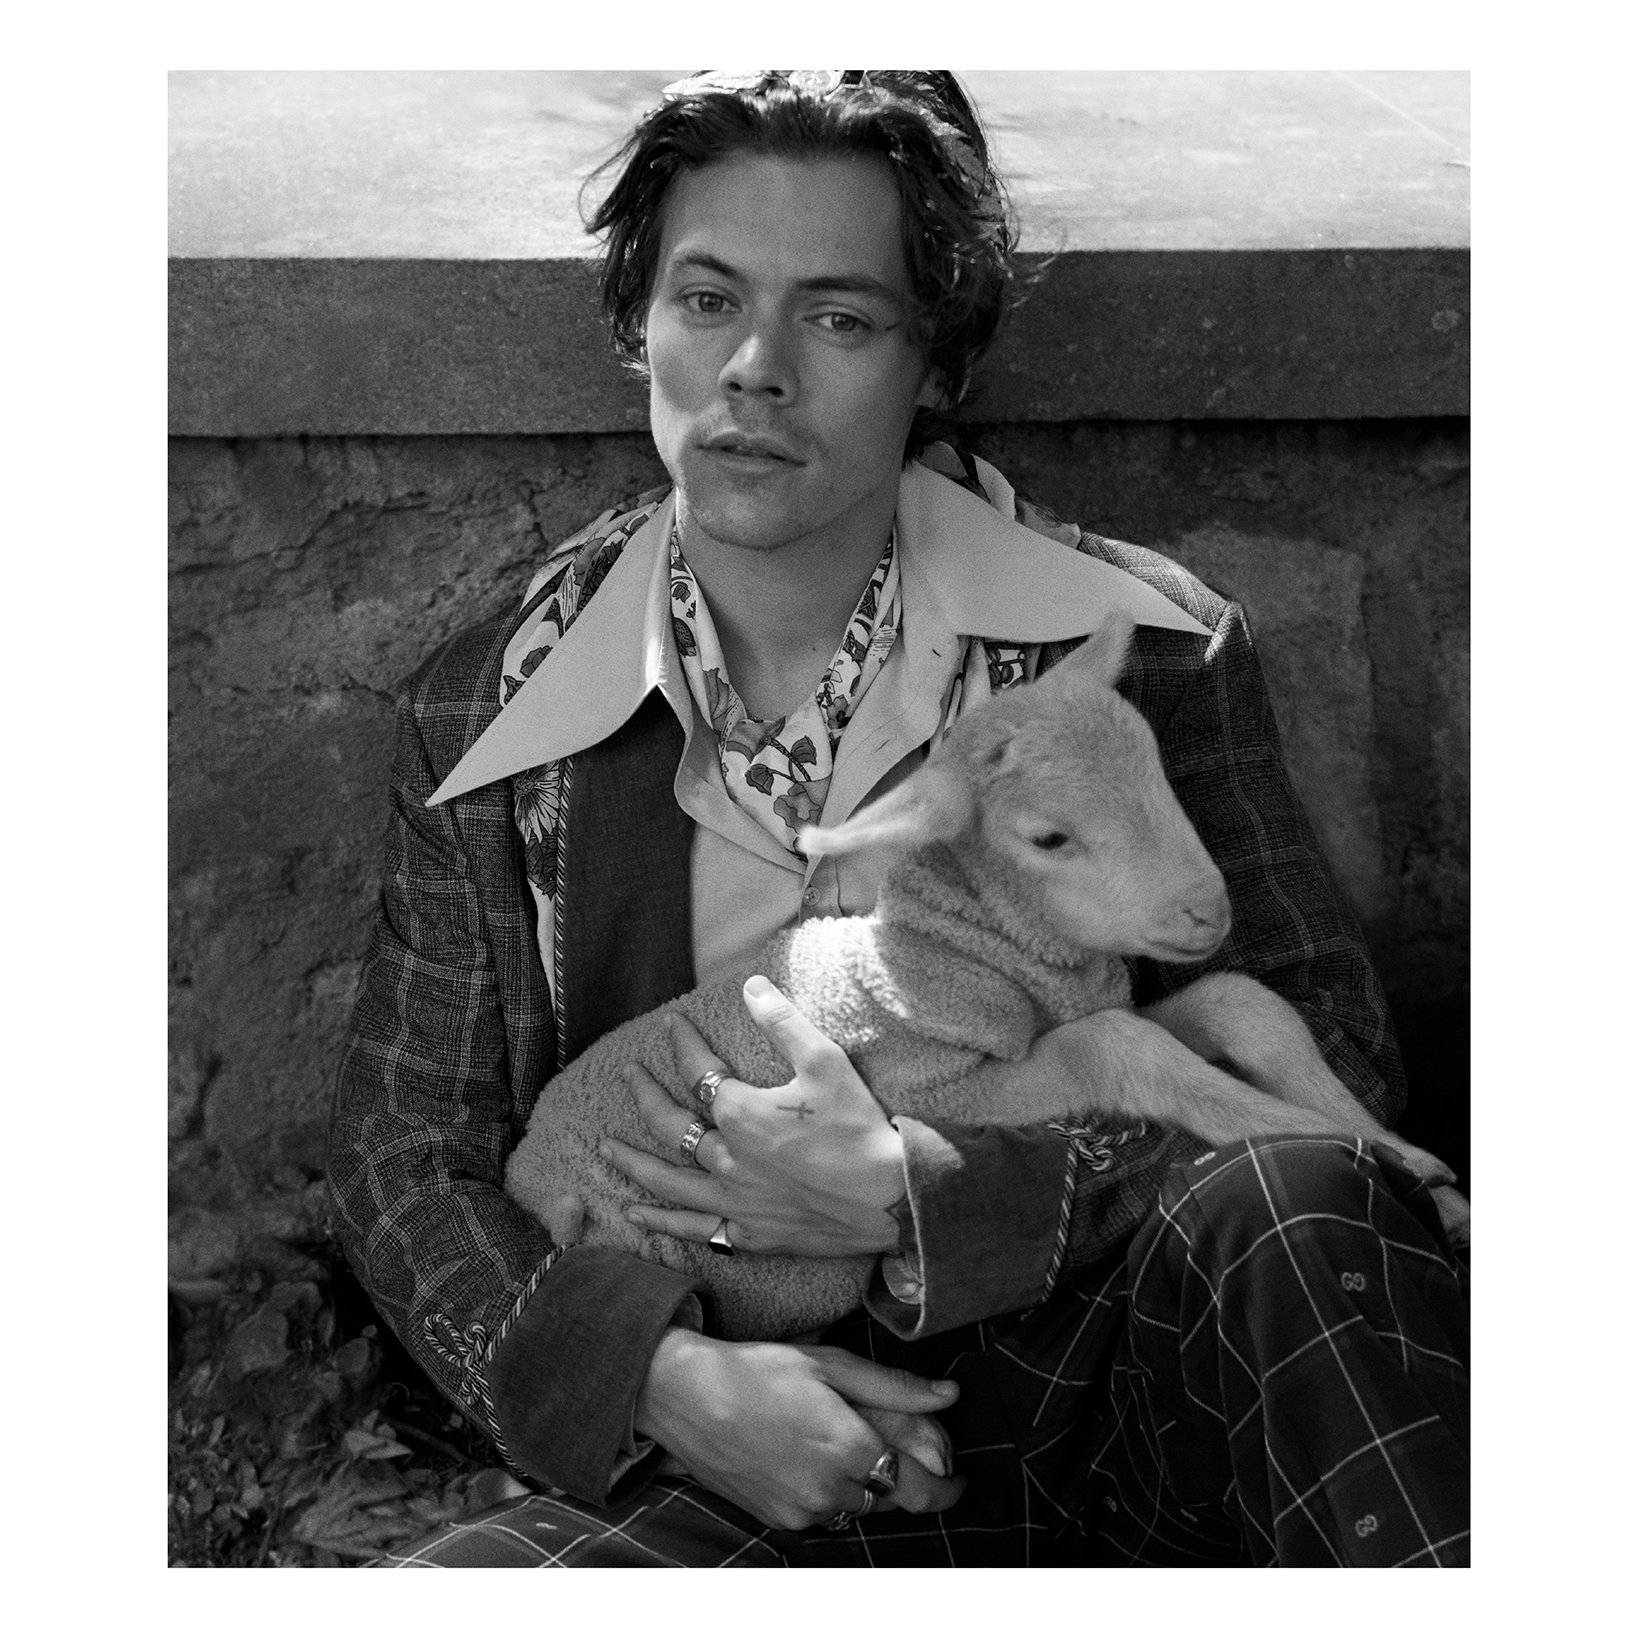 Pictured with a lamb, @Harry_Styles is photographed by #GlenLuchford for the #GucciTailoring campaign in a mouliné bee check jacket, an oxford tailored shirt and a silk scarf with floral print. He also wears a twill jacket, silk crêpe shirt and oversized cross necklace. https://t.co/YZ9a2EsvUf